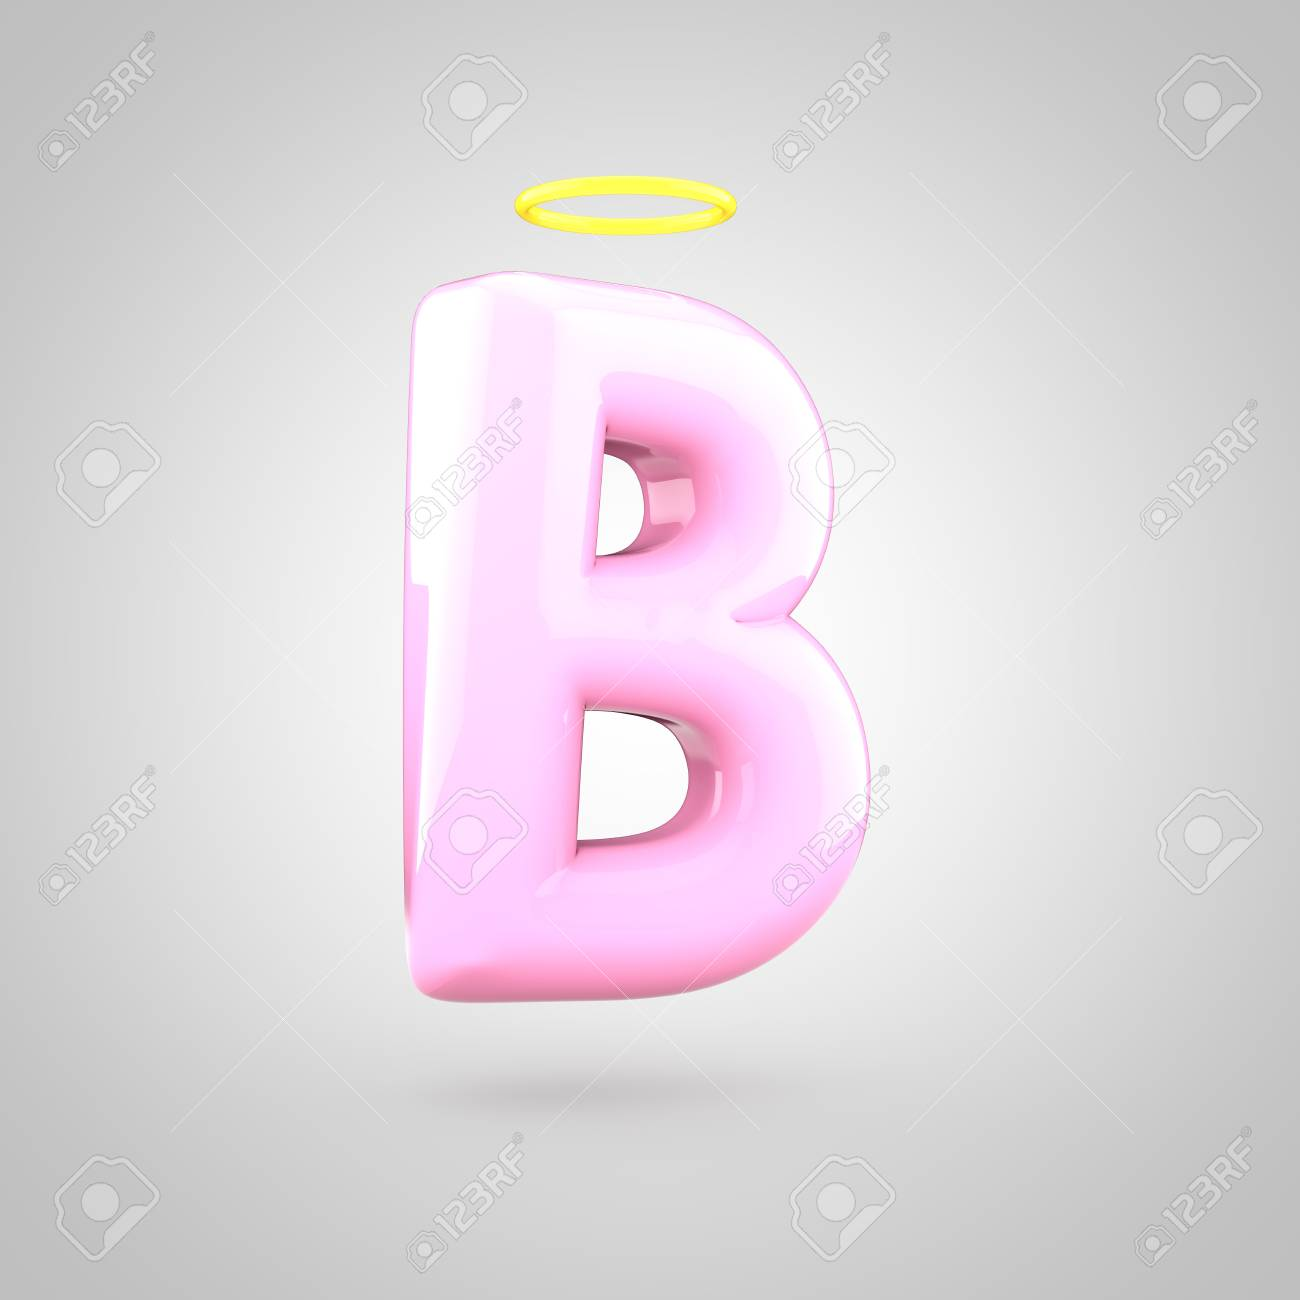 Cute Angelic Pink Letter B Uppercase 3d Render Of Bubble Font